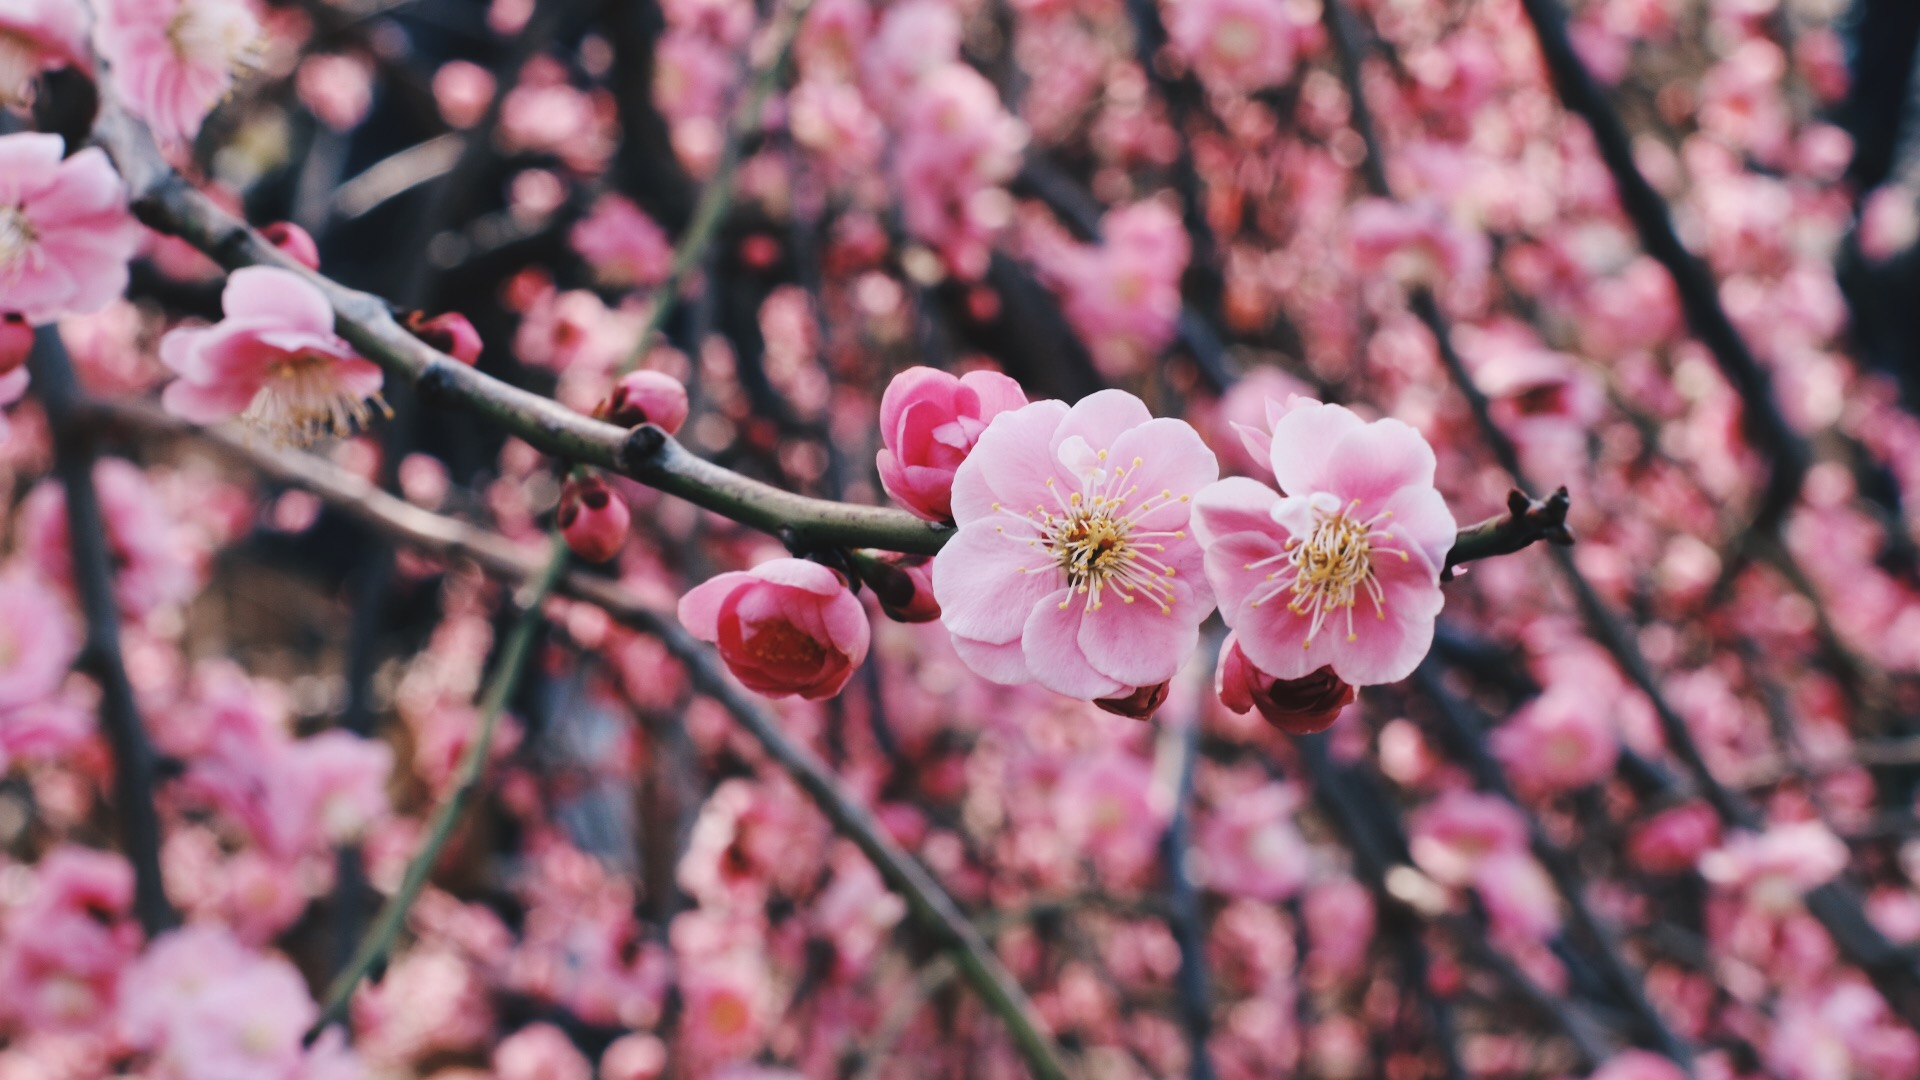 Still can't tell the difference between cherry and plum blossoms...